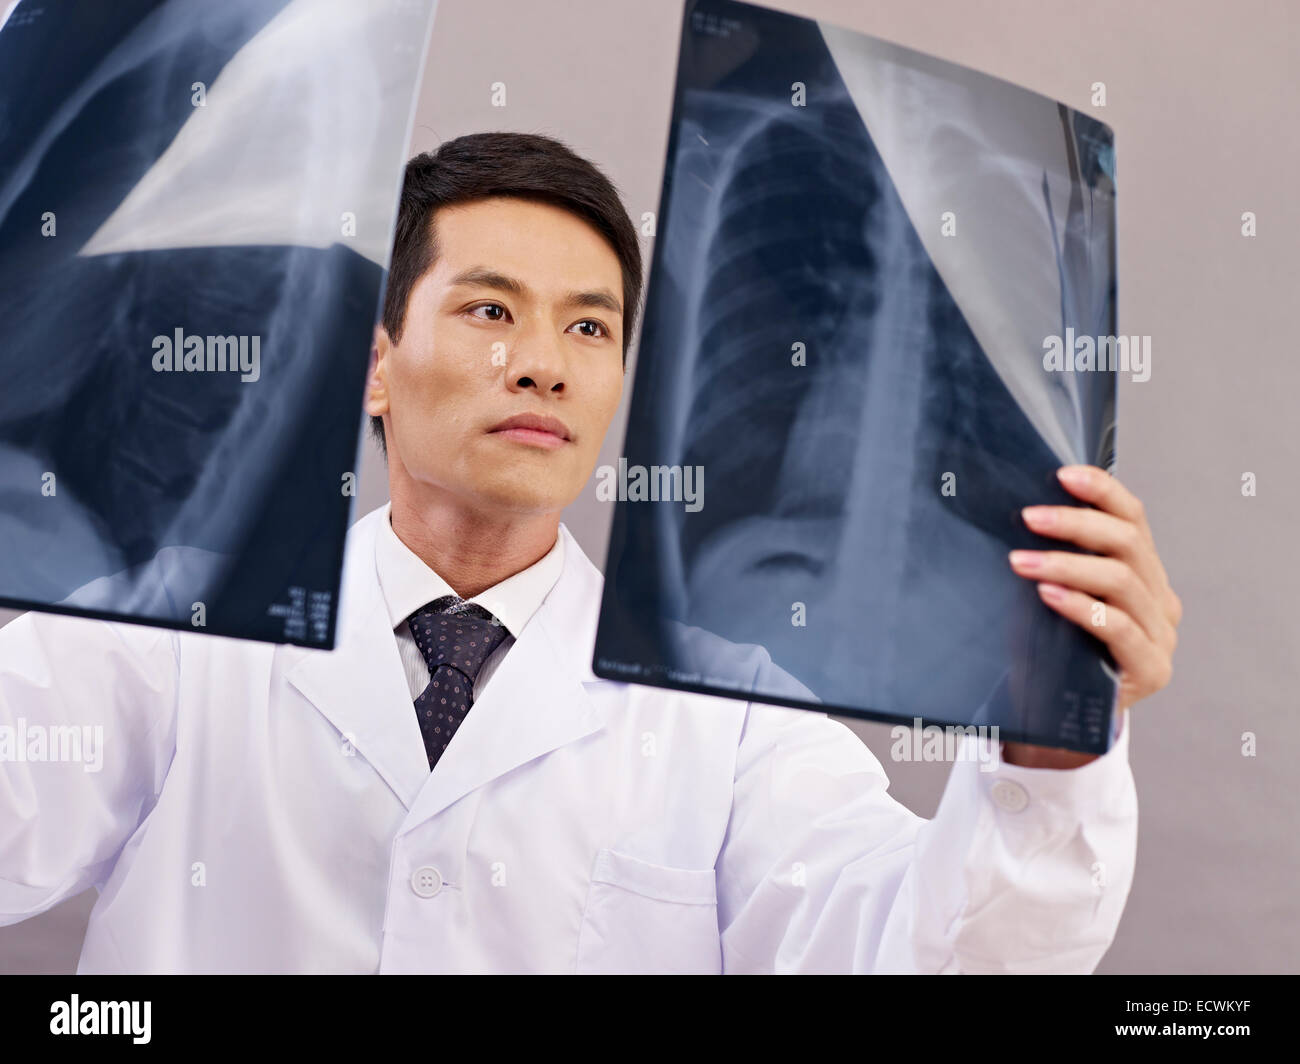 asian doctor at work - Stock Image